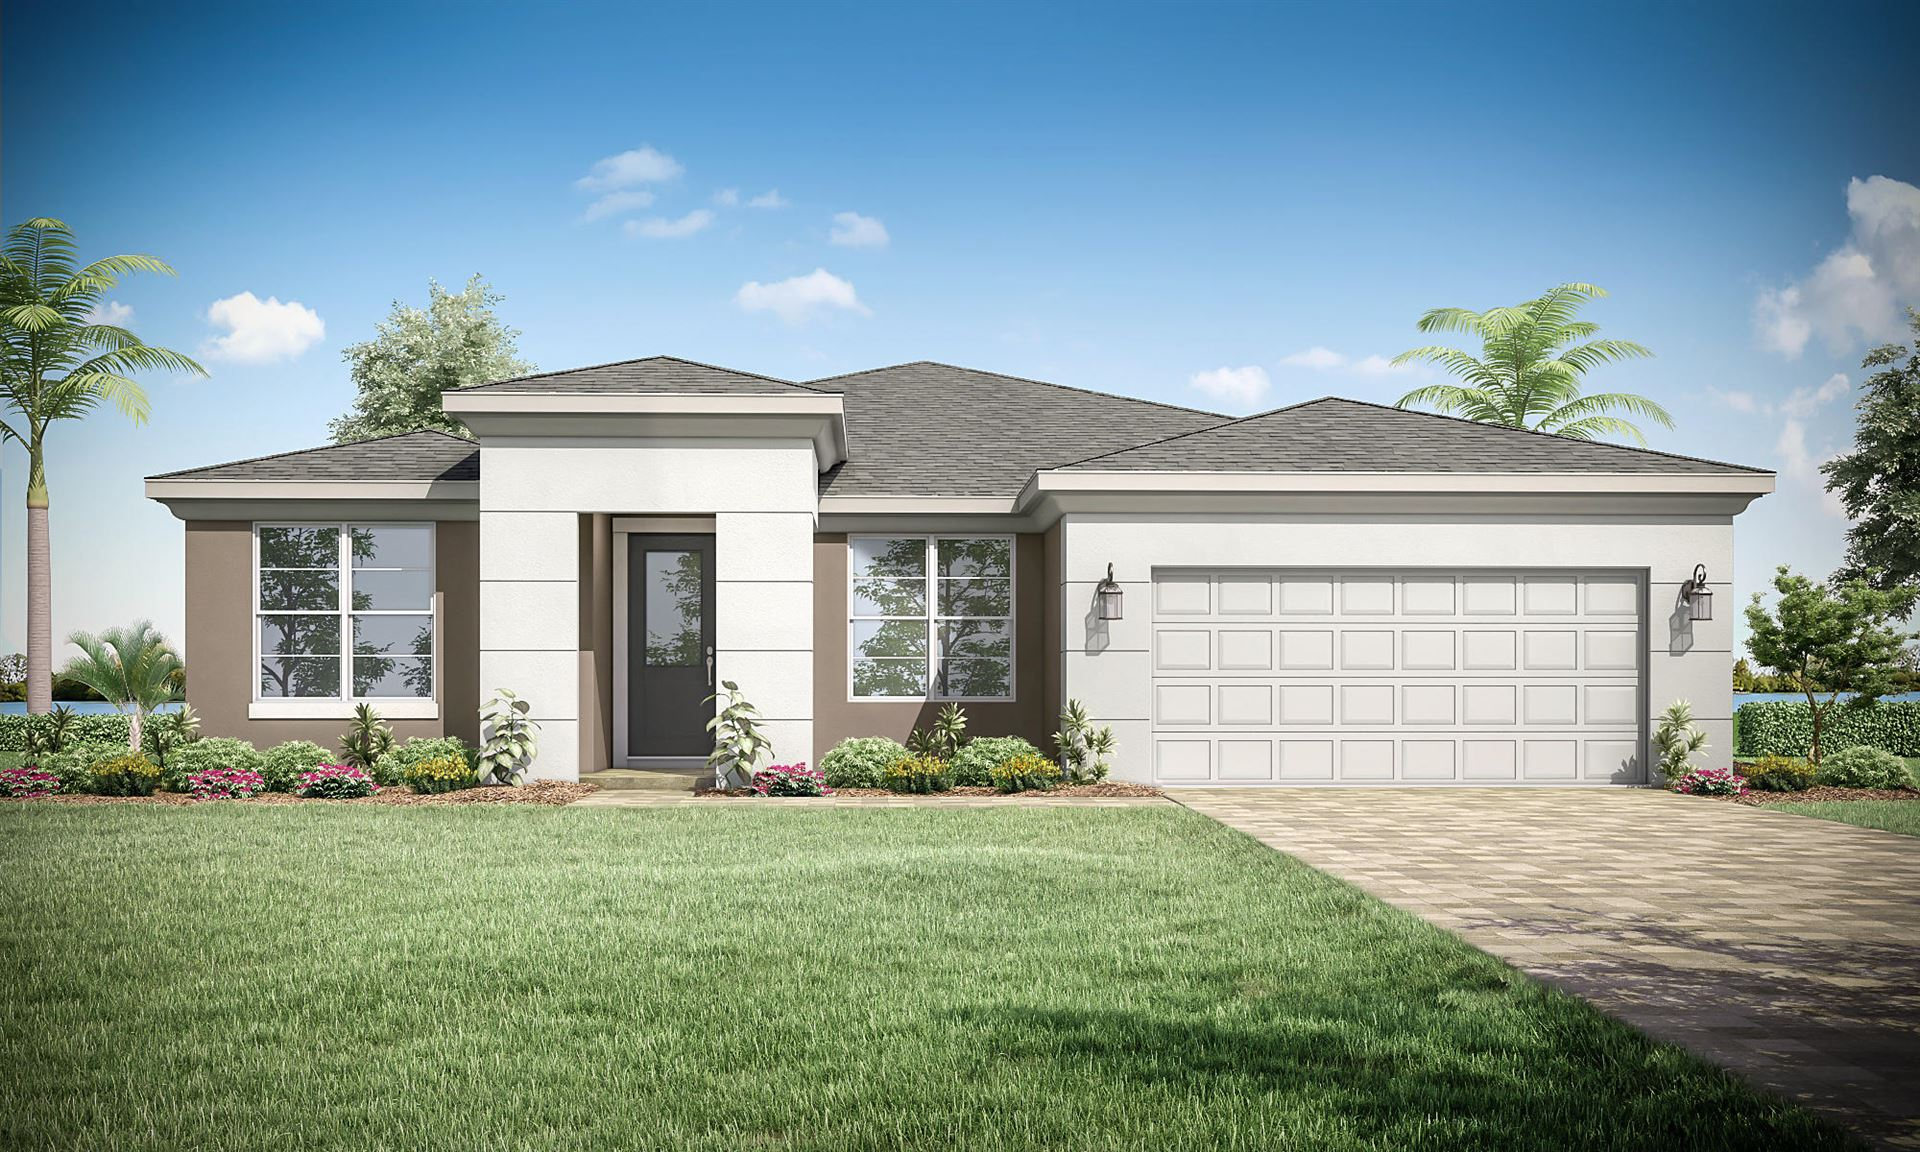 10800 SW Carina Lane #Lot 165, Port Saint Lucie, FL 34987 - #: RX-10684763